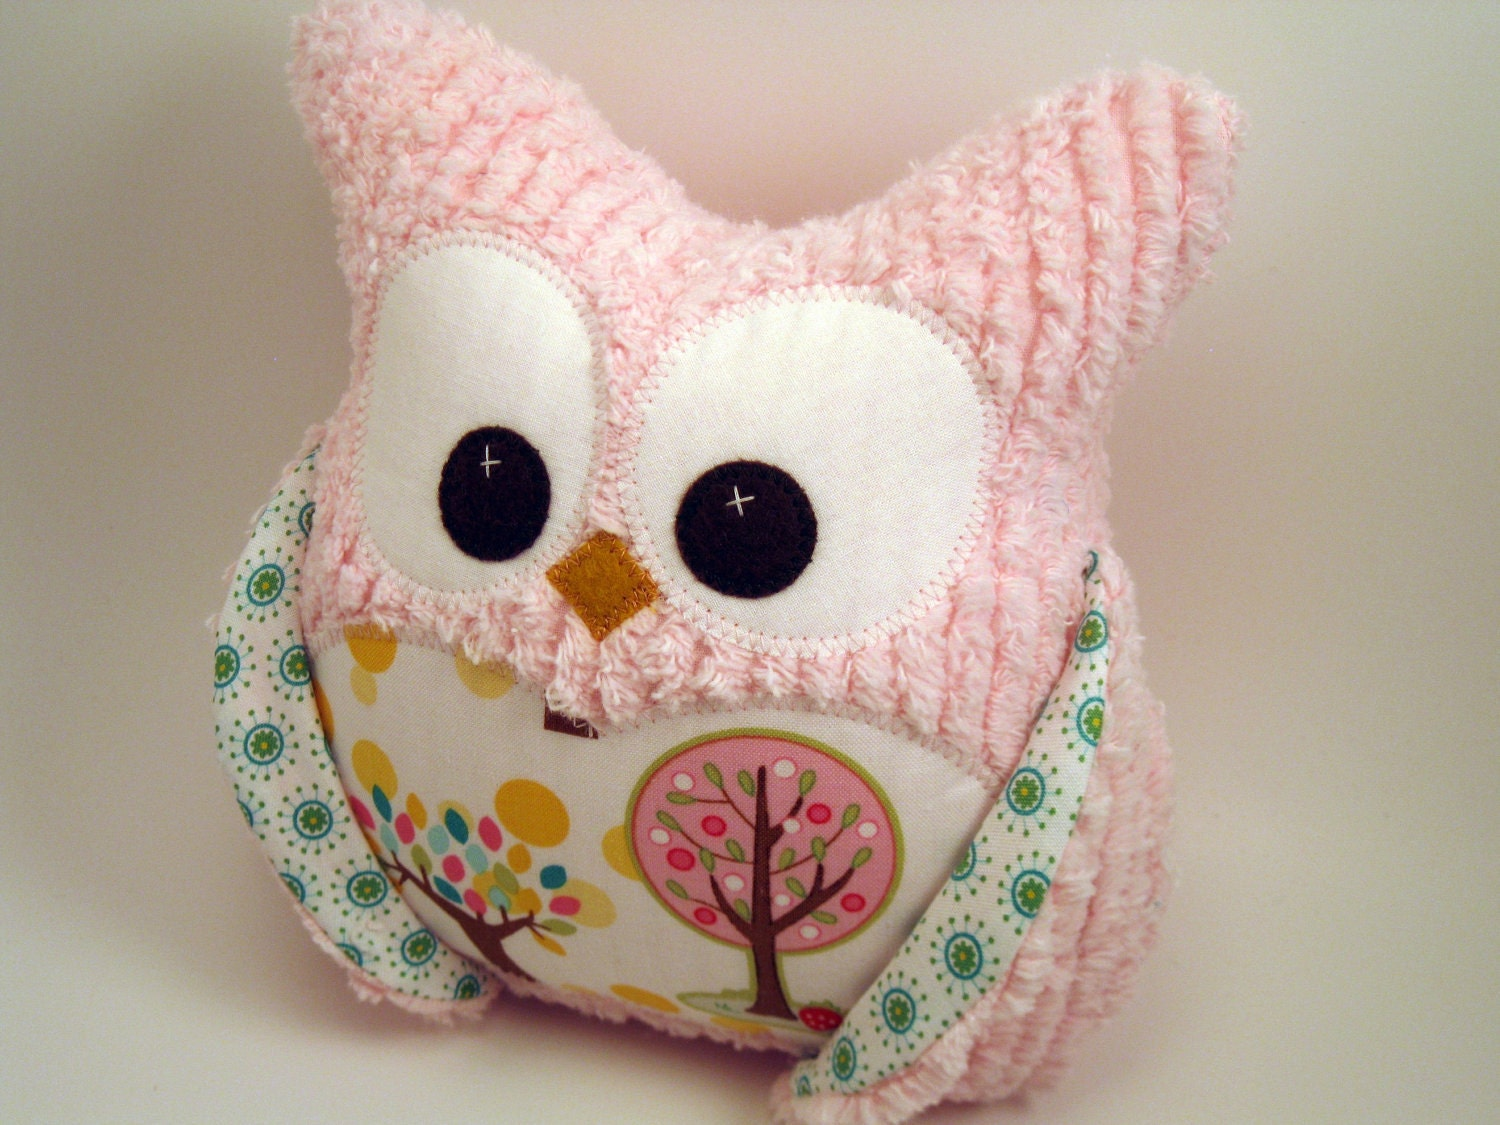 How To Make Cute Owl Pillows : Plush Owl Pillow Pink chenille tree fabric